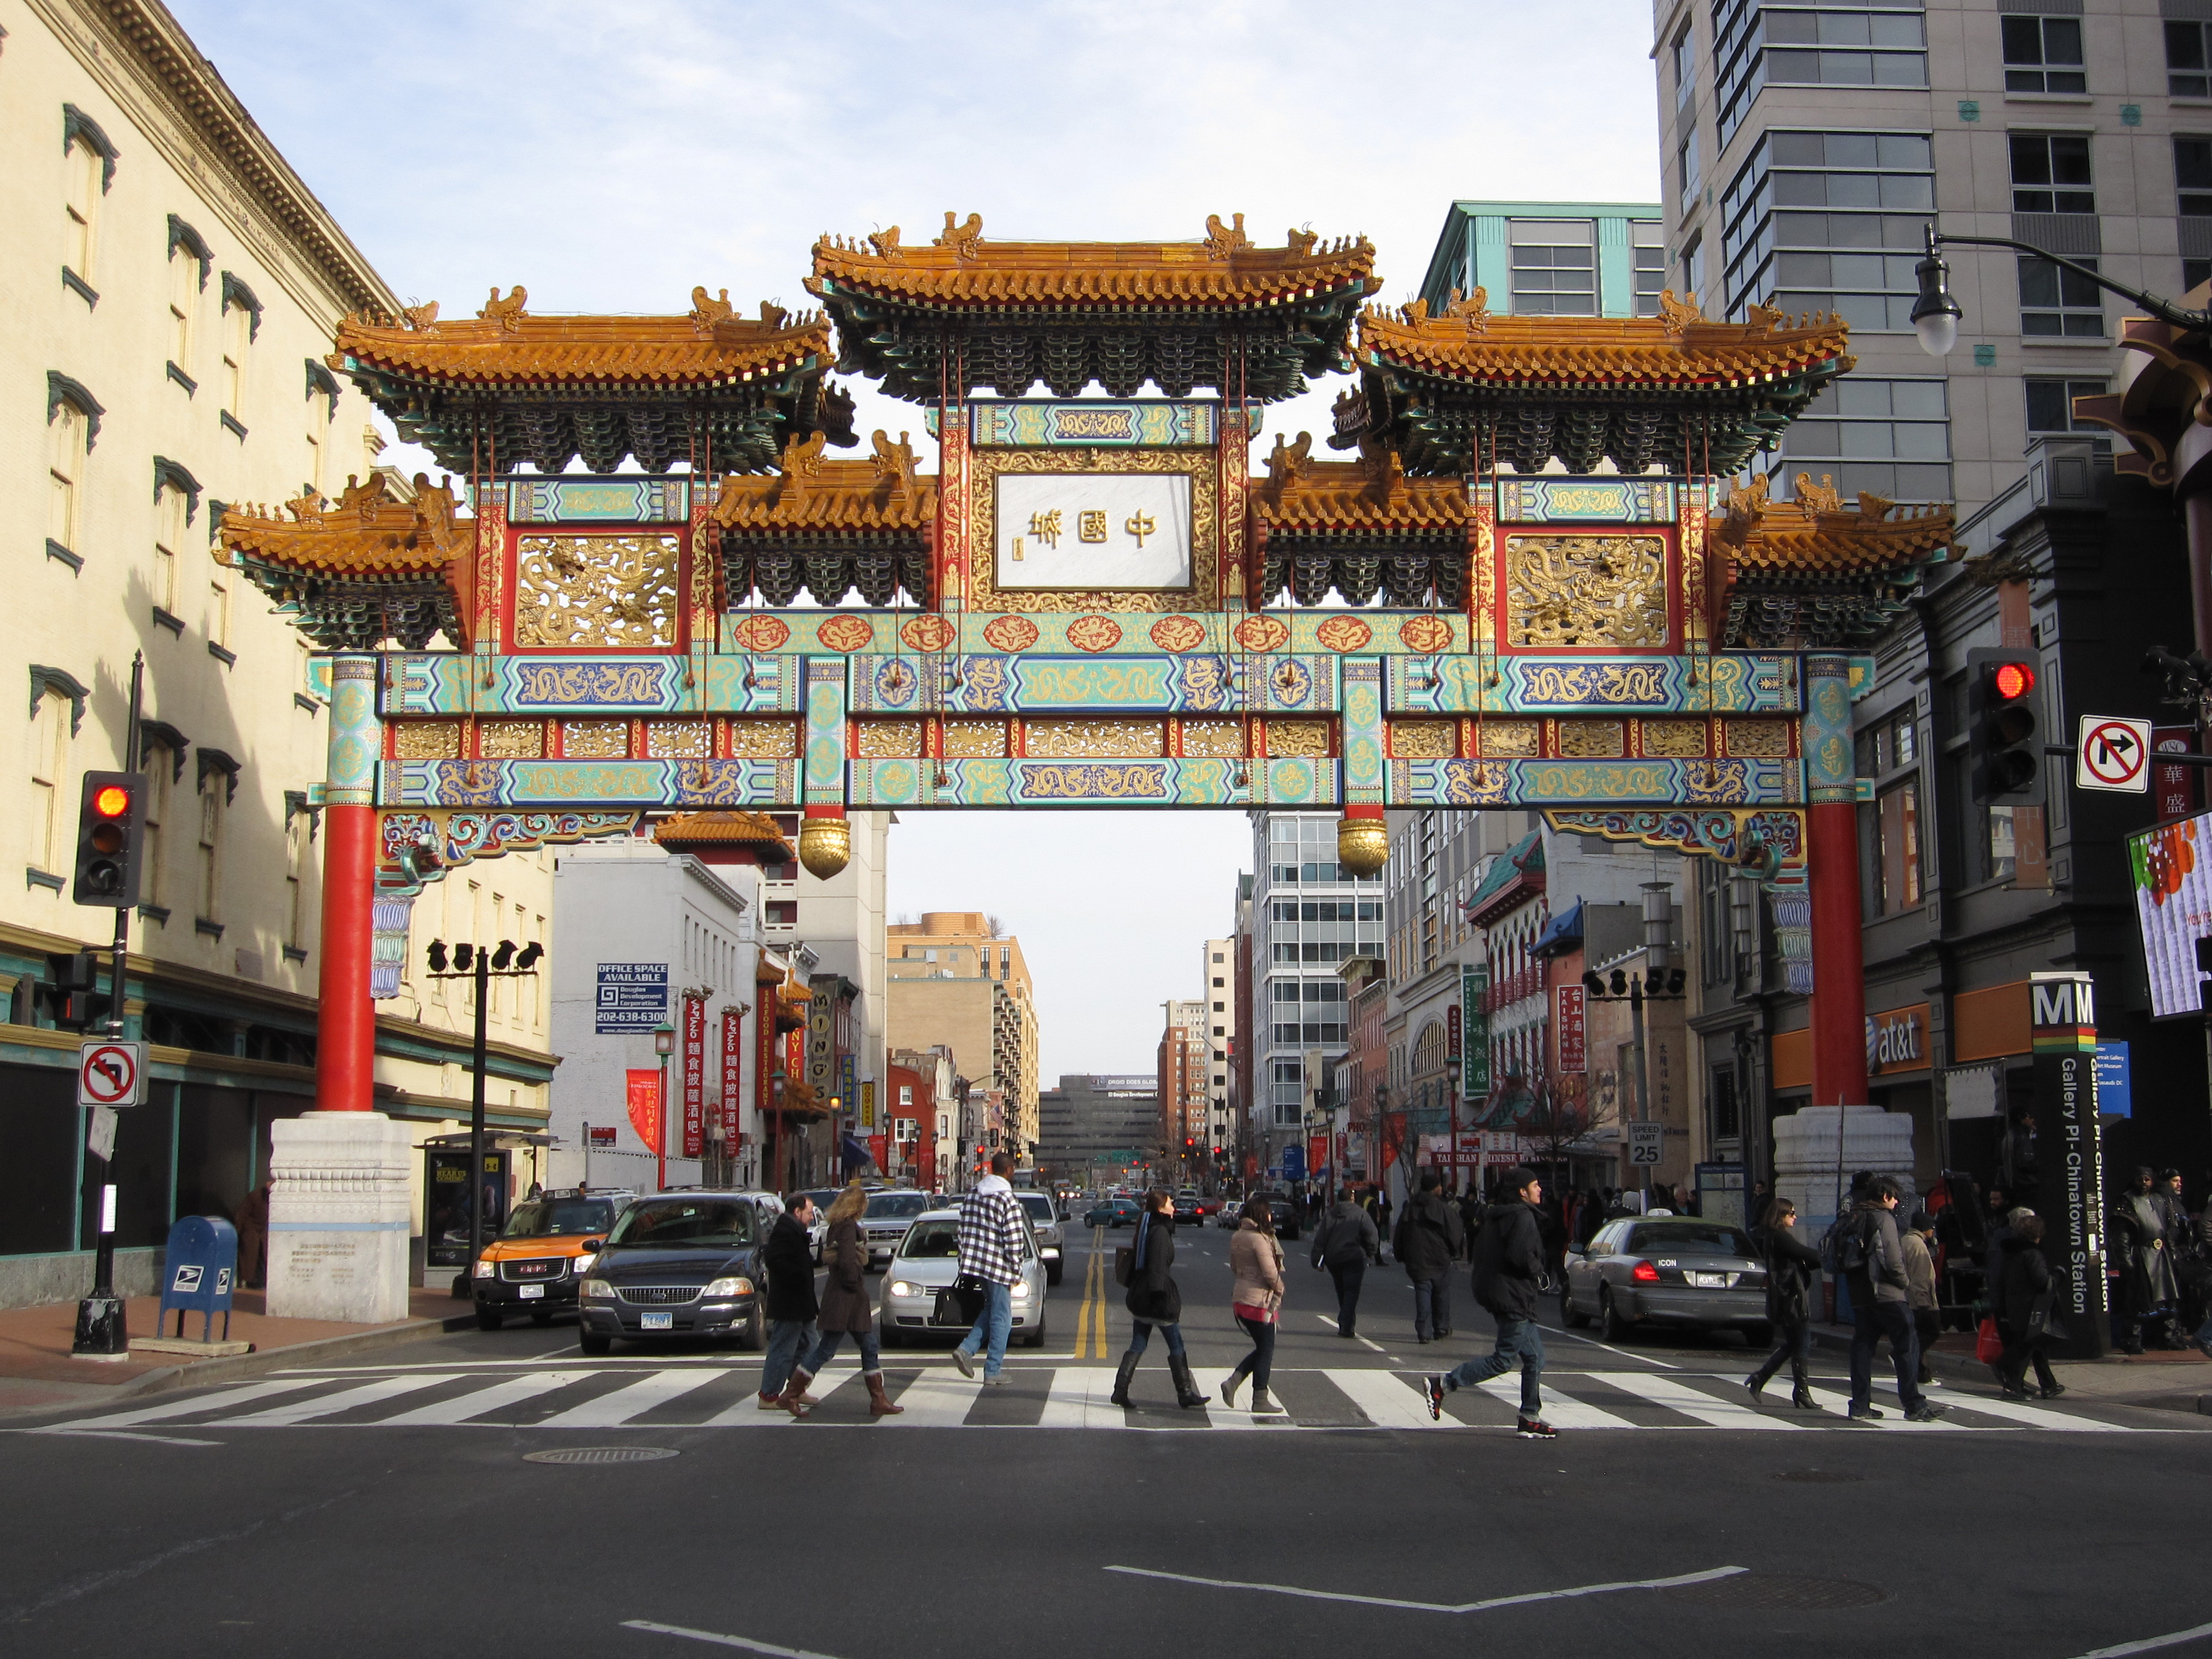 The Rise and Fall of DC's Chinatown   Perspectives on ... Map Of American Chinatowns on map of union sq, map of southwest philly, map of chinese theater, map of girard, map of the aquarium, map of the domain, map of roslindale village, map of charles street, map of north avenue beach, map of garden oaks, map of kodak theater, map of identity, map of watts tower, map of san francisco map, map of washington square west, map of san francisco cable car, map of broadway district, map of washington bridge, map of columbia point, map of central district,